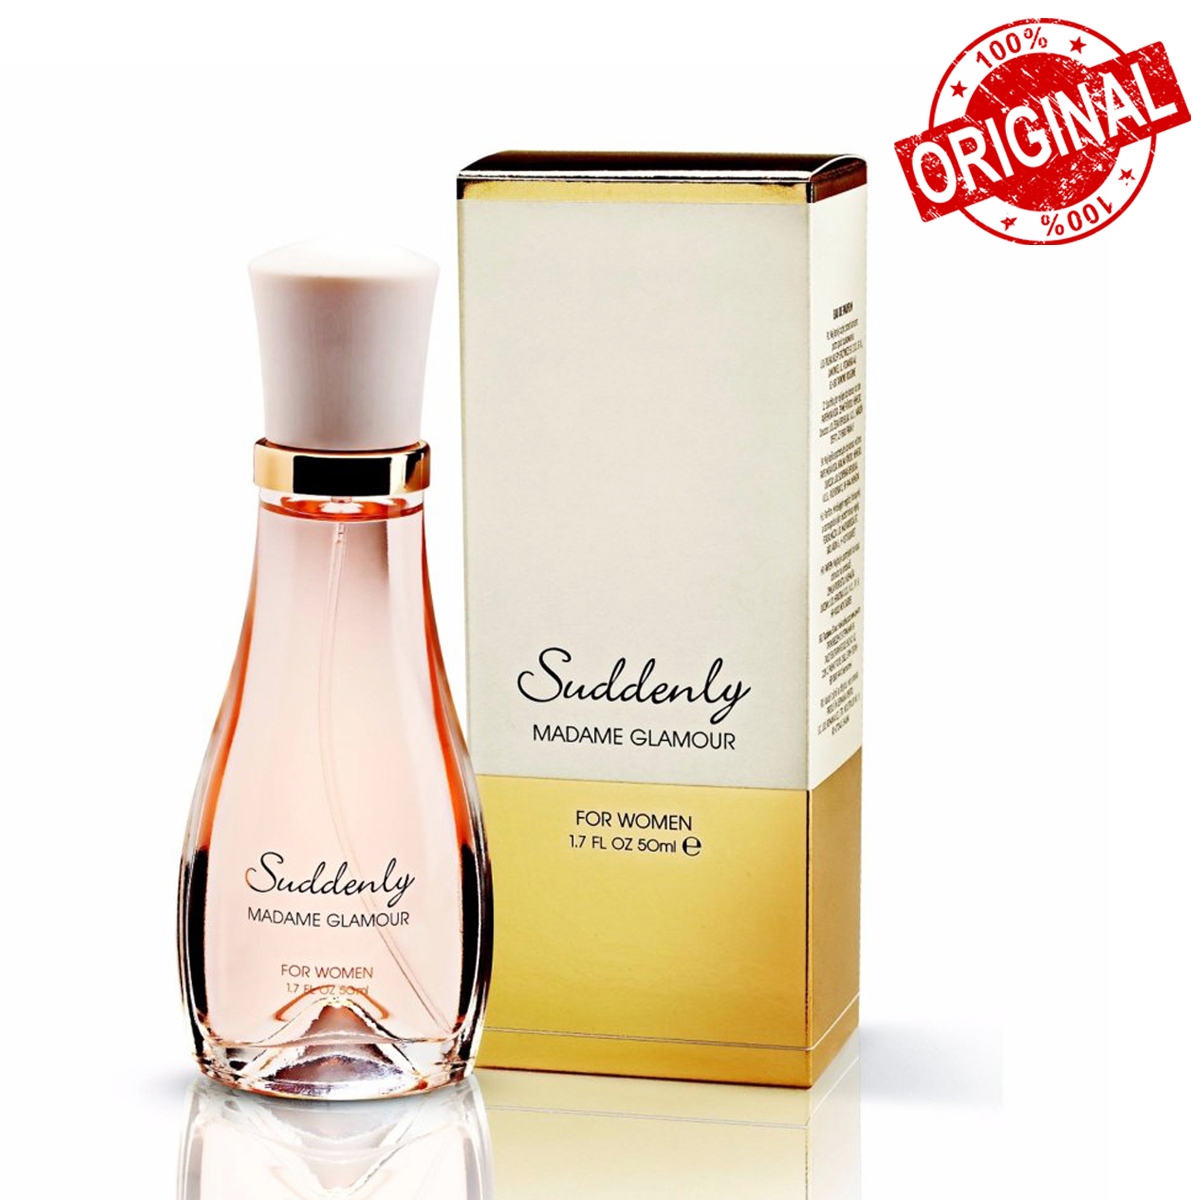 NƯỚC HOA SUDDENLY MADEME GLAMOUR FOR WOMEN 50ML